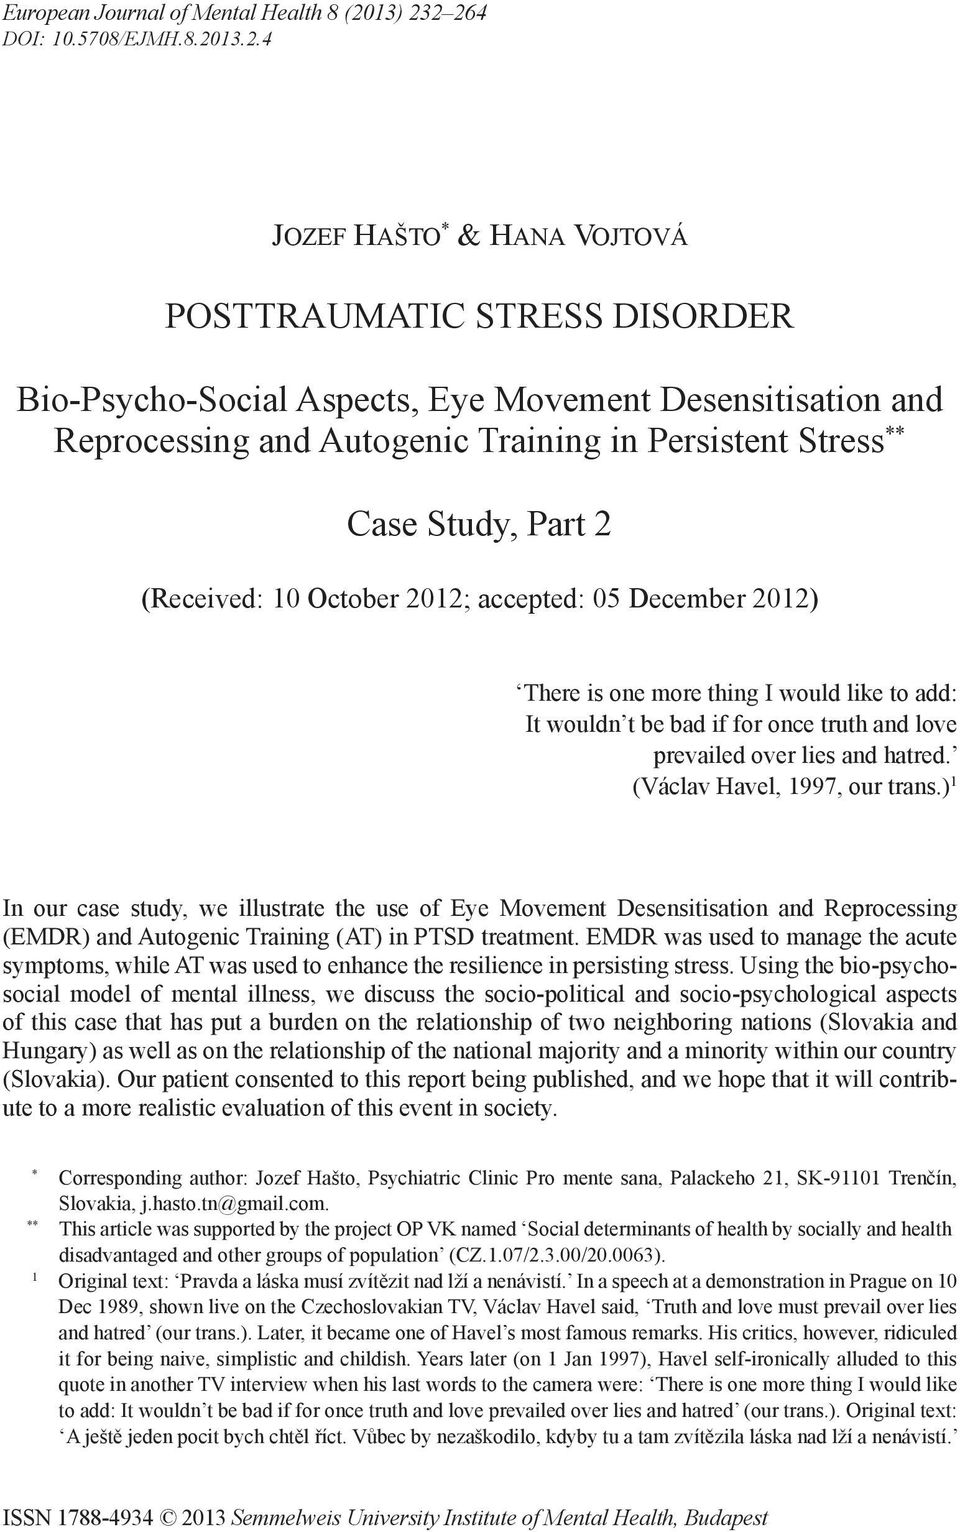 2 264 DOI: 10.5708/EJMH.8.2013.2.4 Jozef Hašto * & Hana Vojtová POSTTRAUMATIC STRESS DISORDER Bio-Psycho-Social Aspects, Eye Movement Desensitisation and Reprocessing and Autogenic Training in